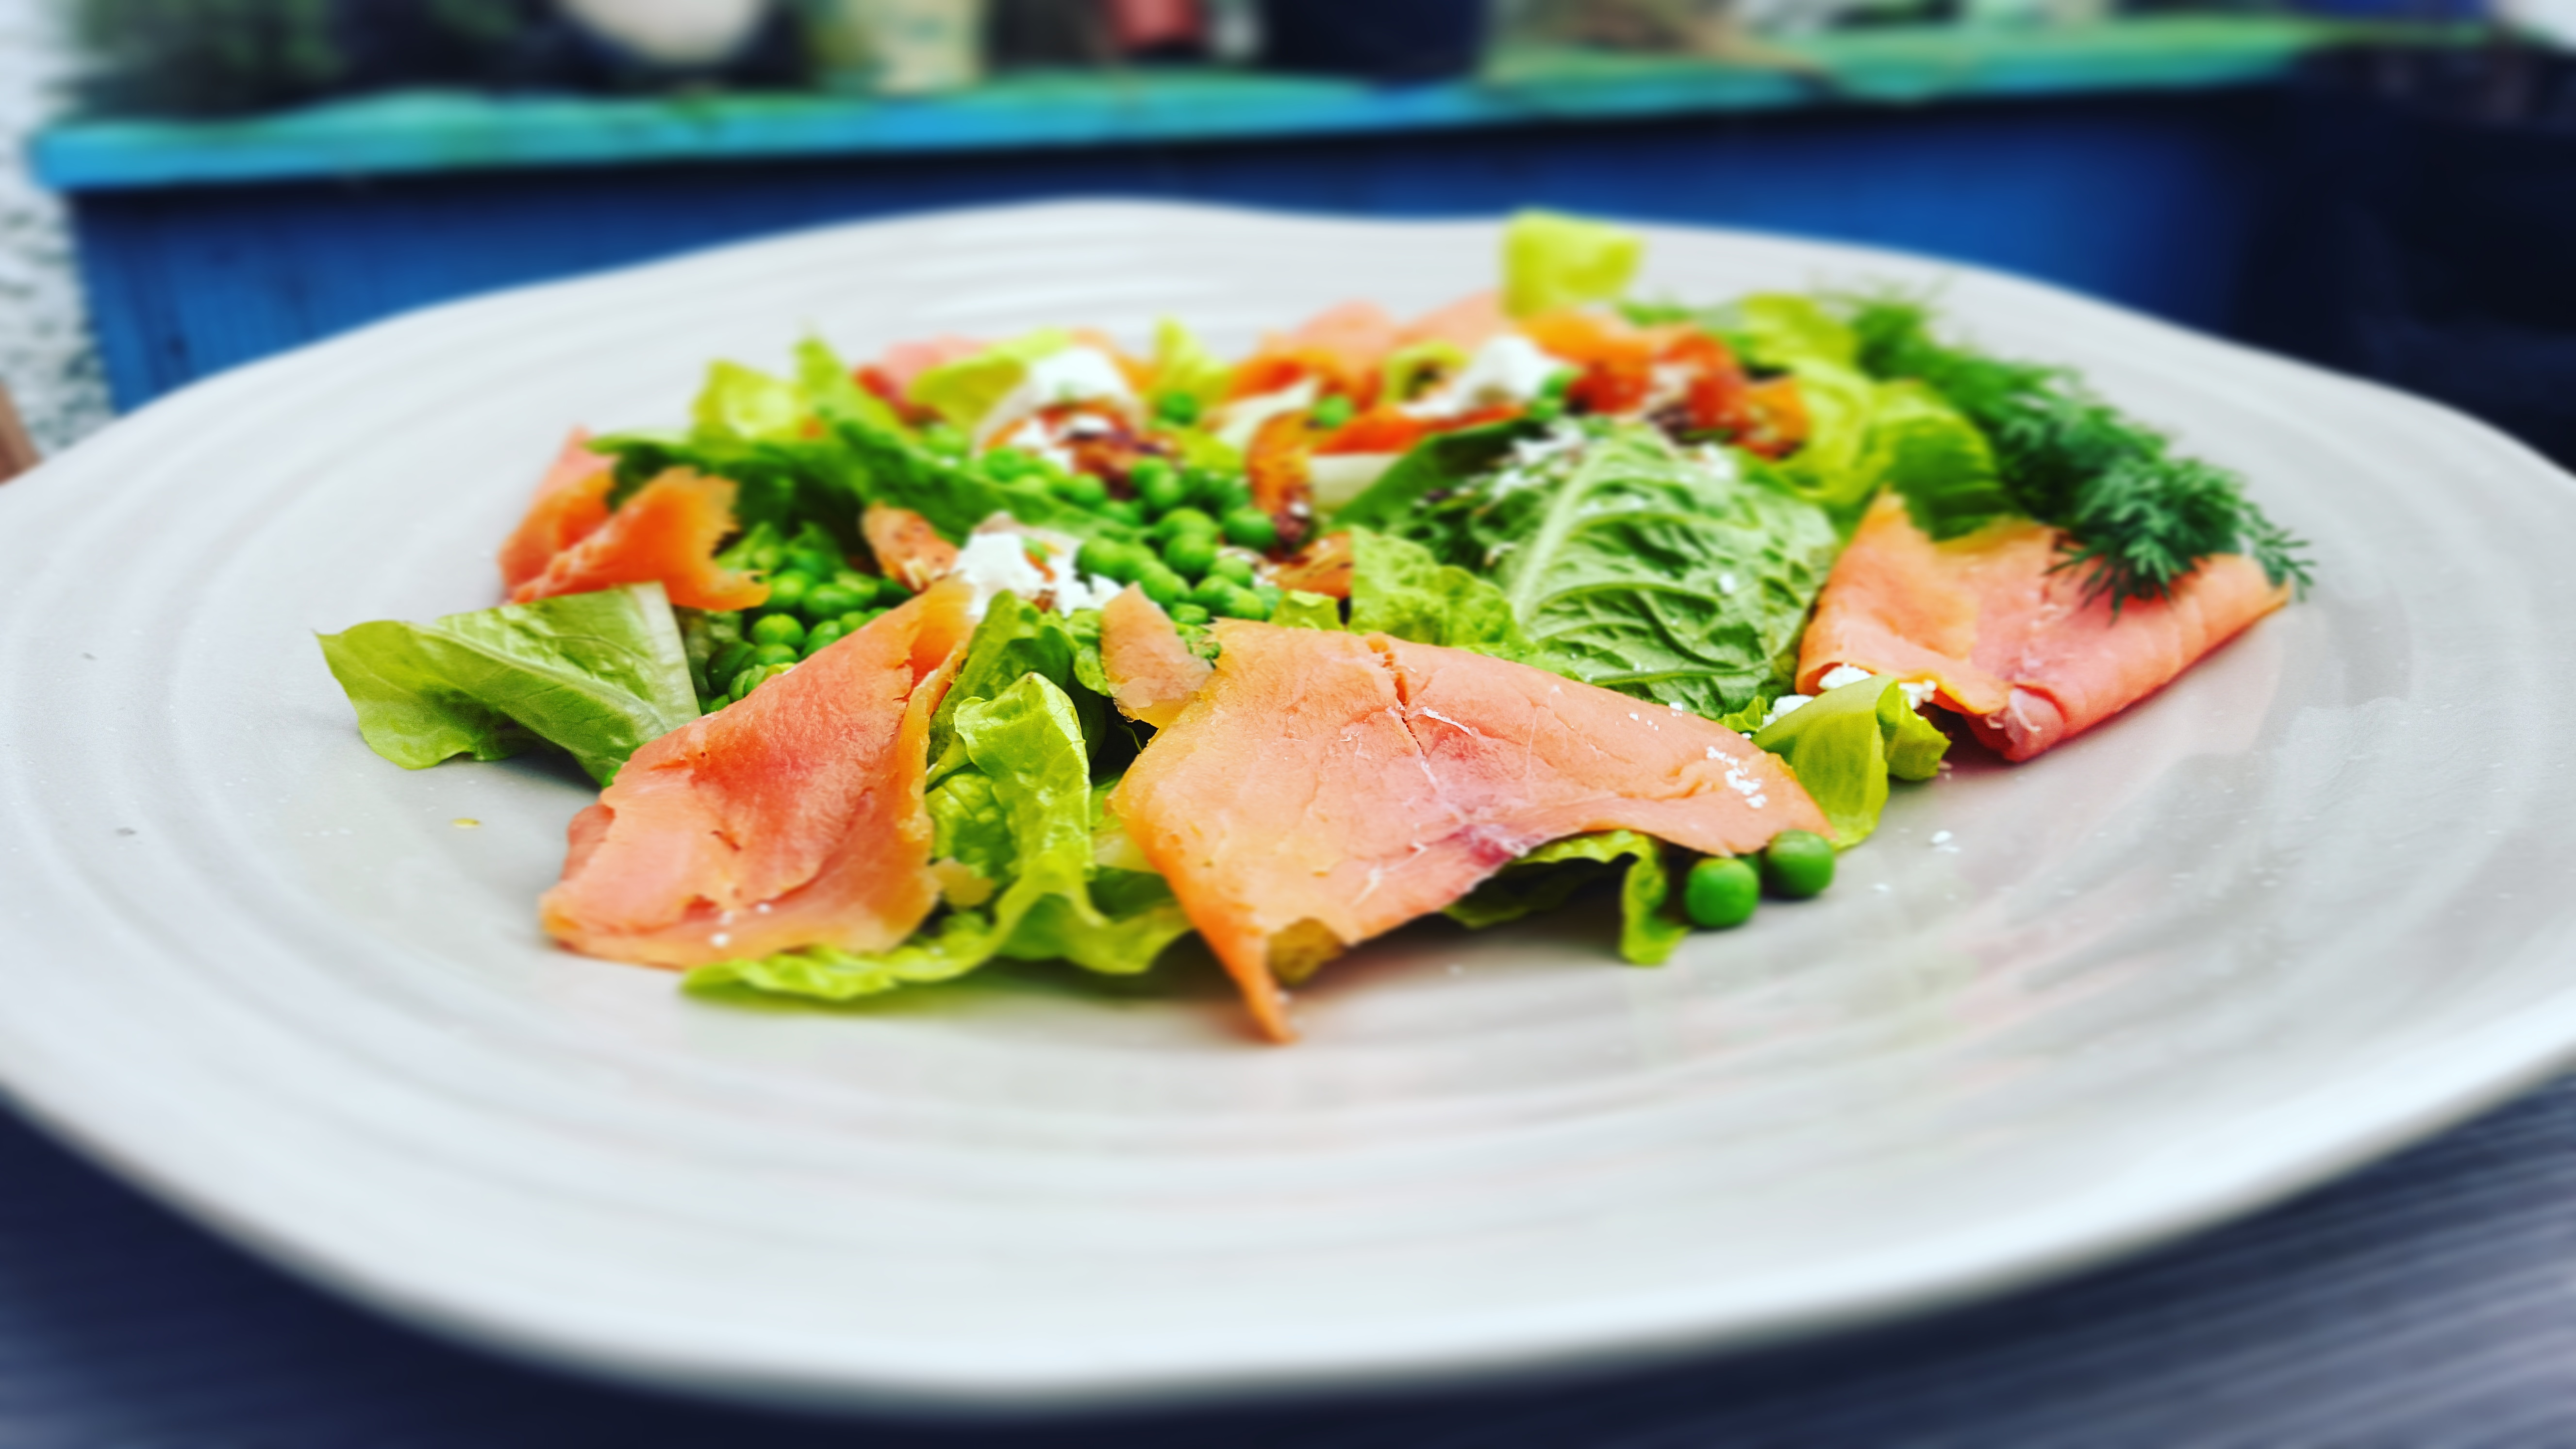 The Weekly Salad – Roasted Carrots, Trout and Greens Salad